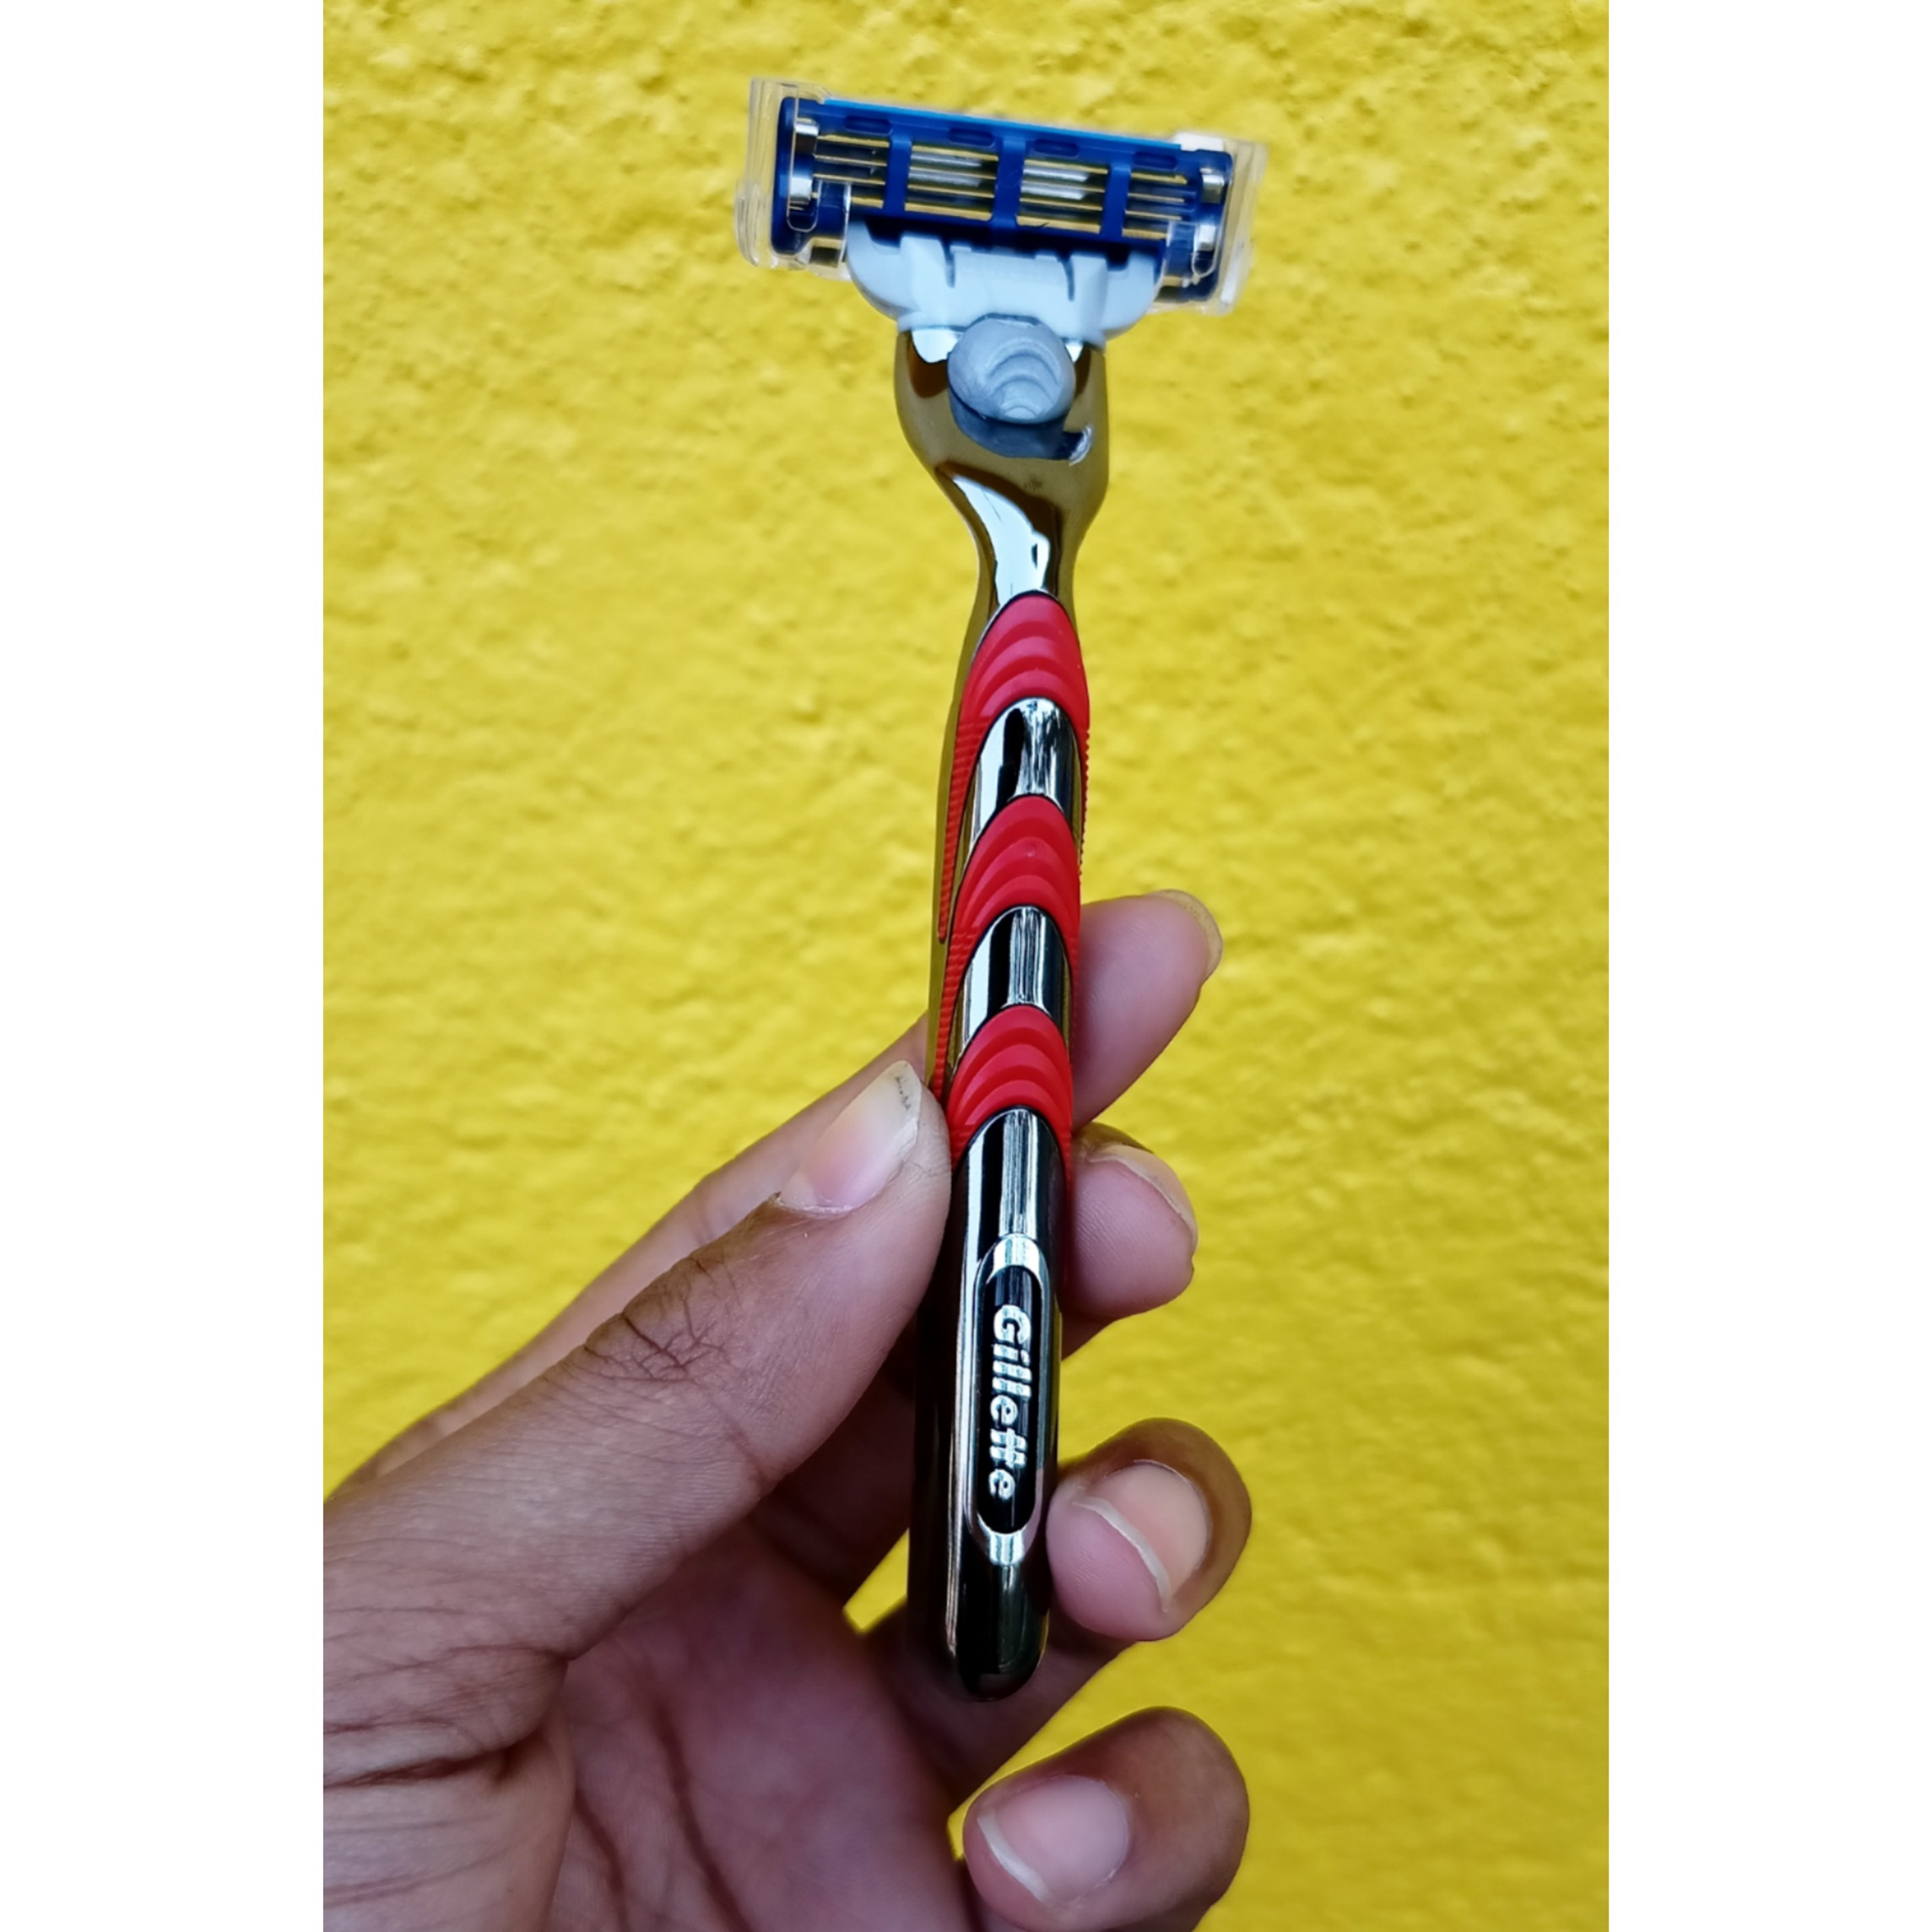 Gillette Mach3 Turbo Manual Shaving Razor-Unbeatable and excellent shave-By eshipanda28